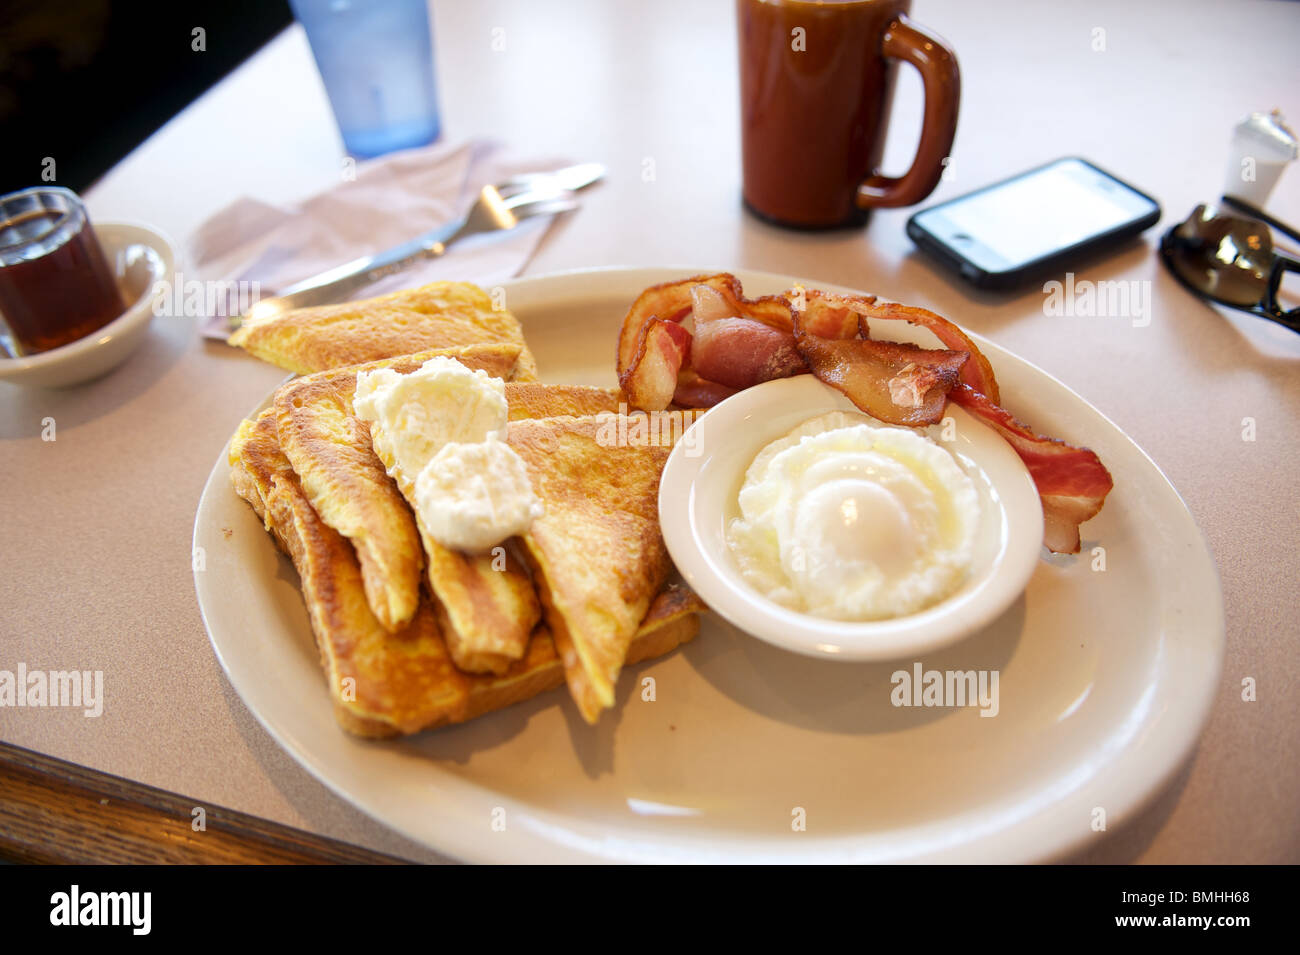 Highway truck stop breakfast. French Toast with bacon and eggs. Off of I-90 interstate highway. , Ellensburg Washing, - Stock Image